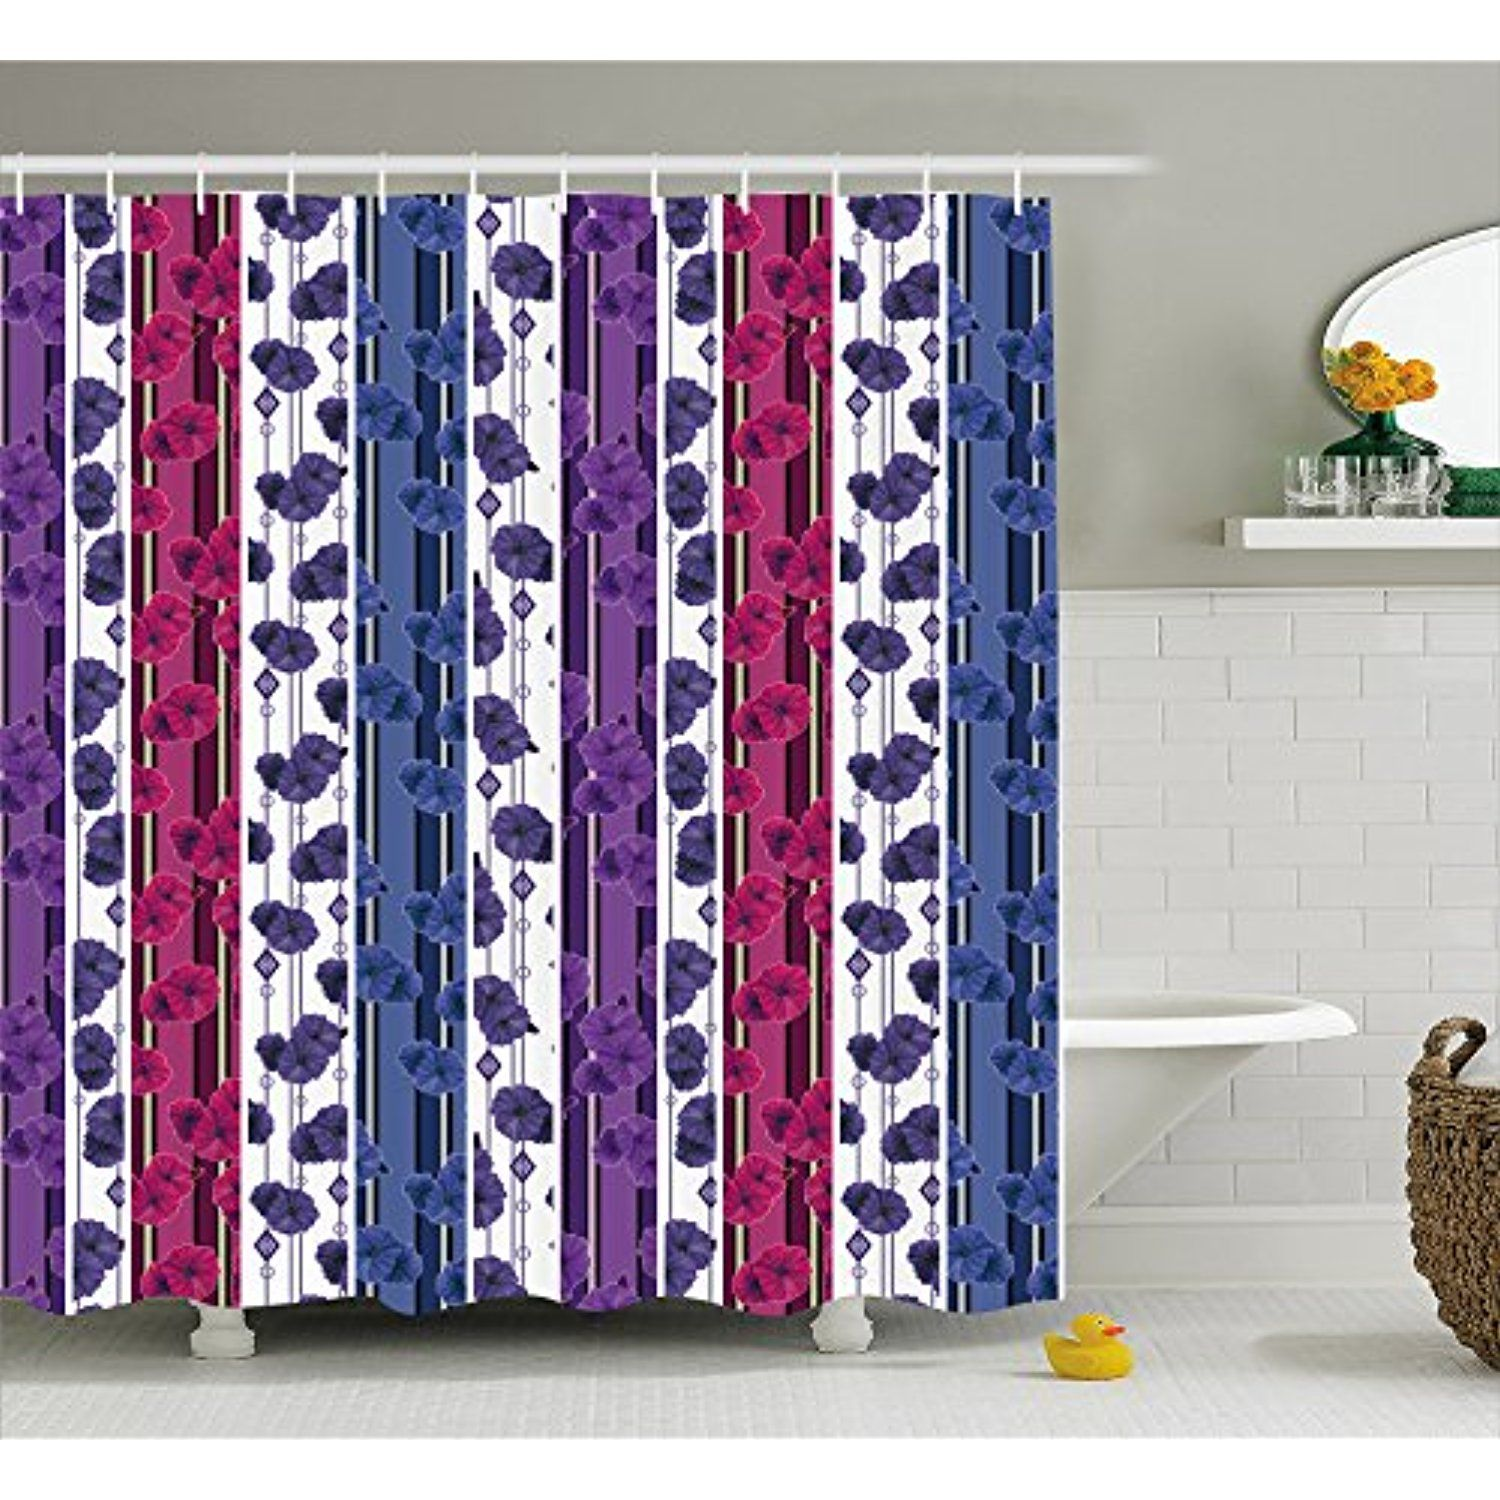 Easter Rabbits Flowers Grass under Blue Sky Shower Curtain Set Bathroom Decor